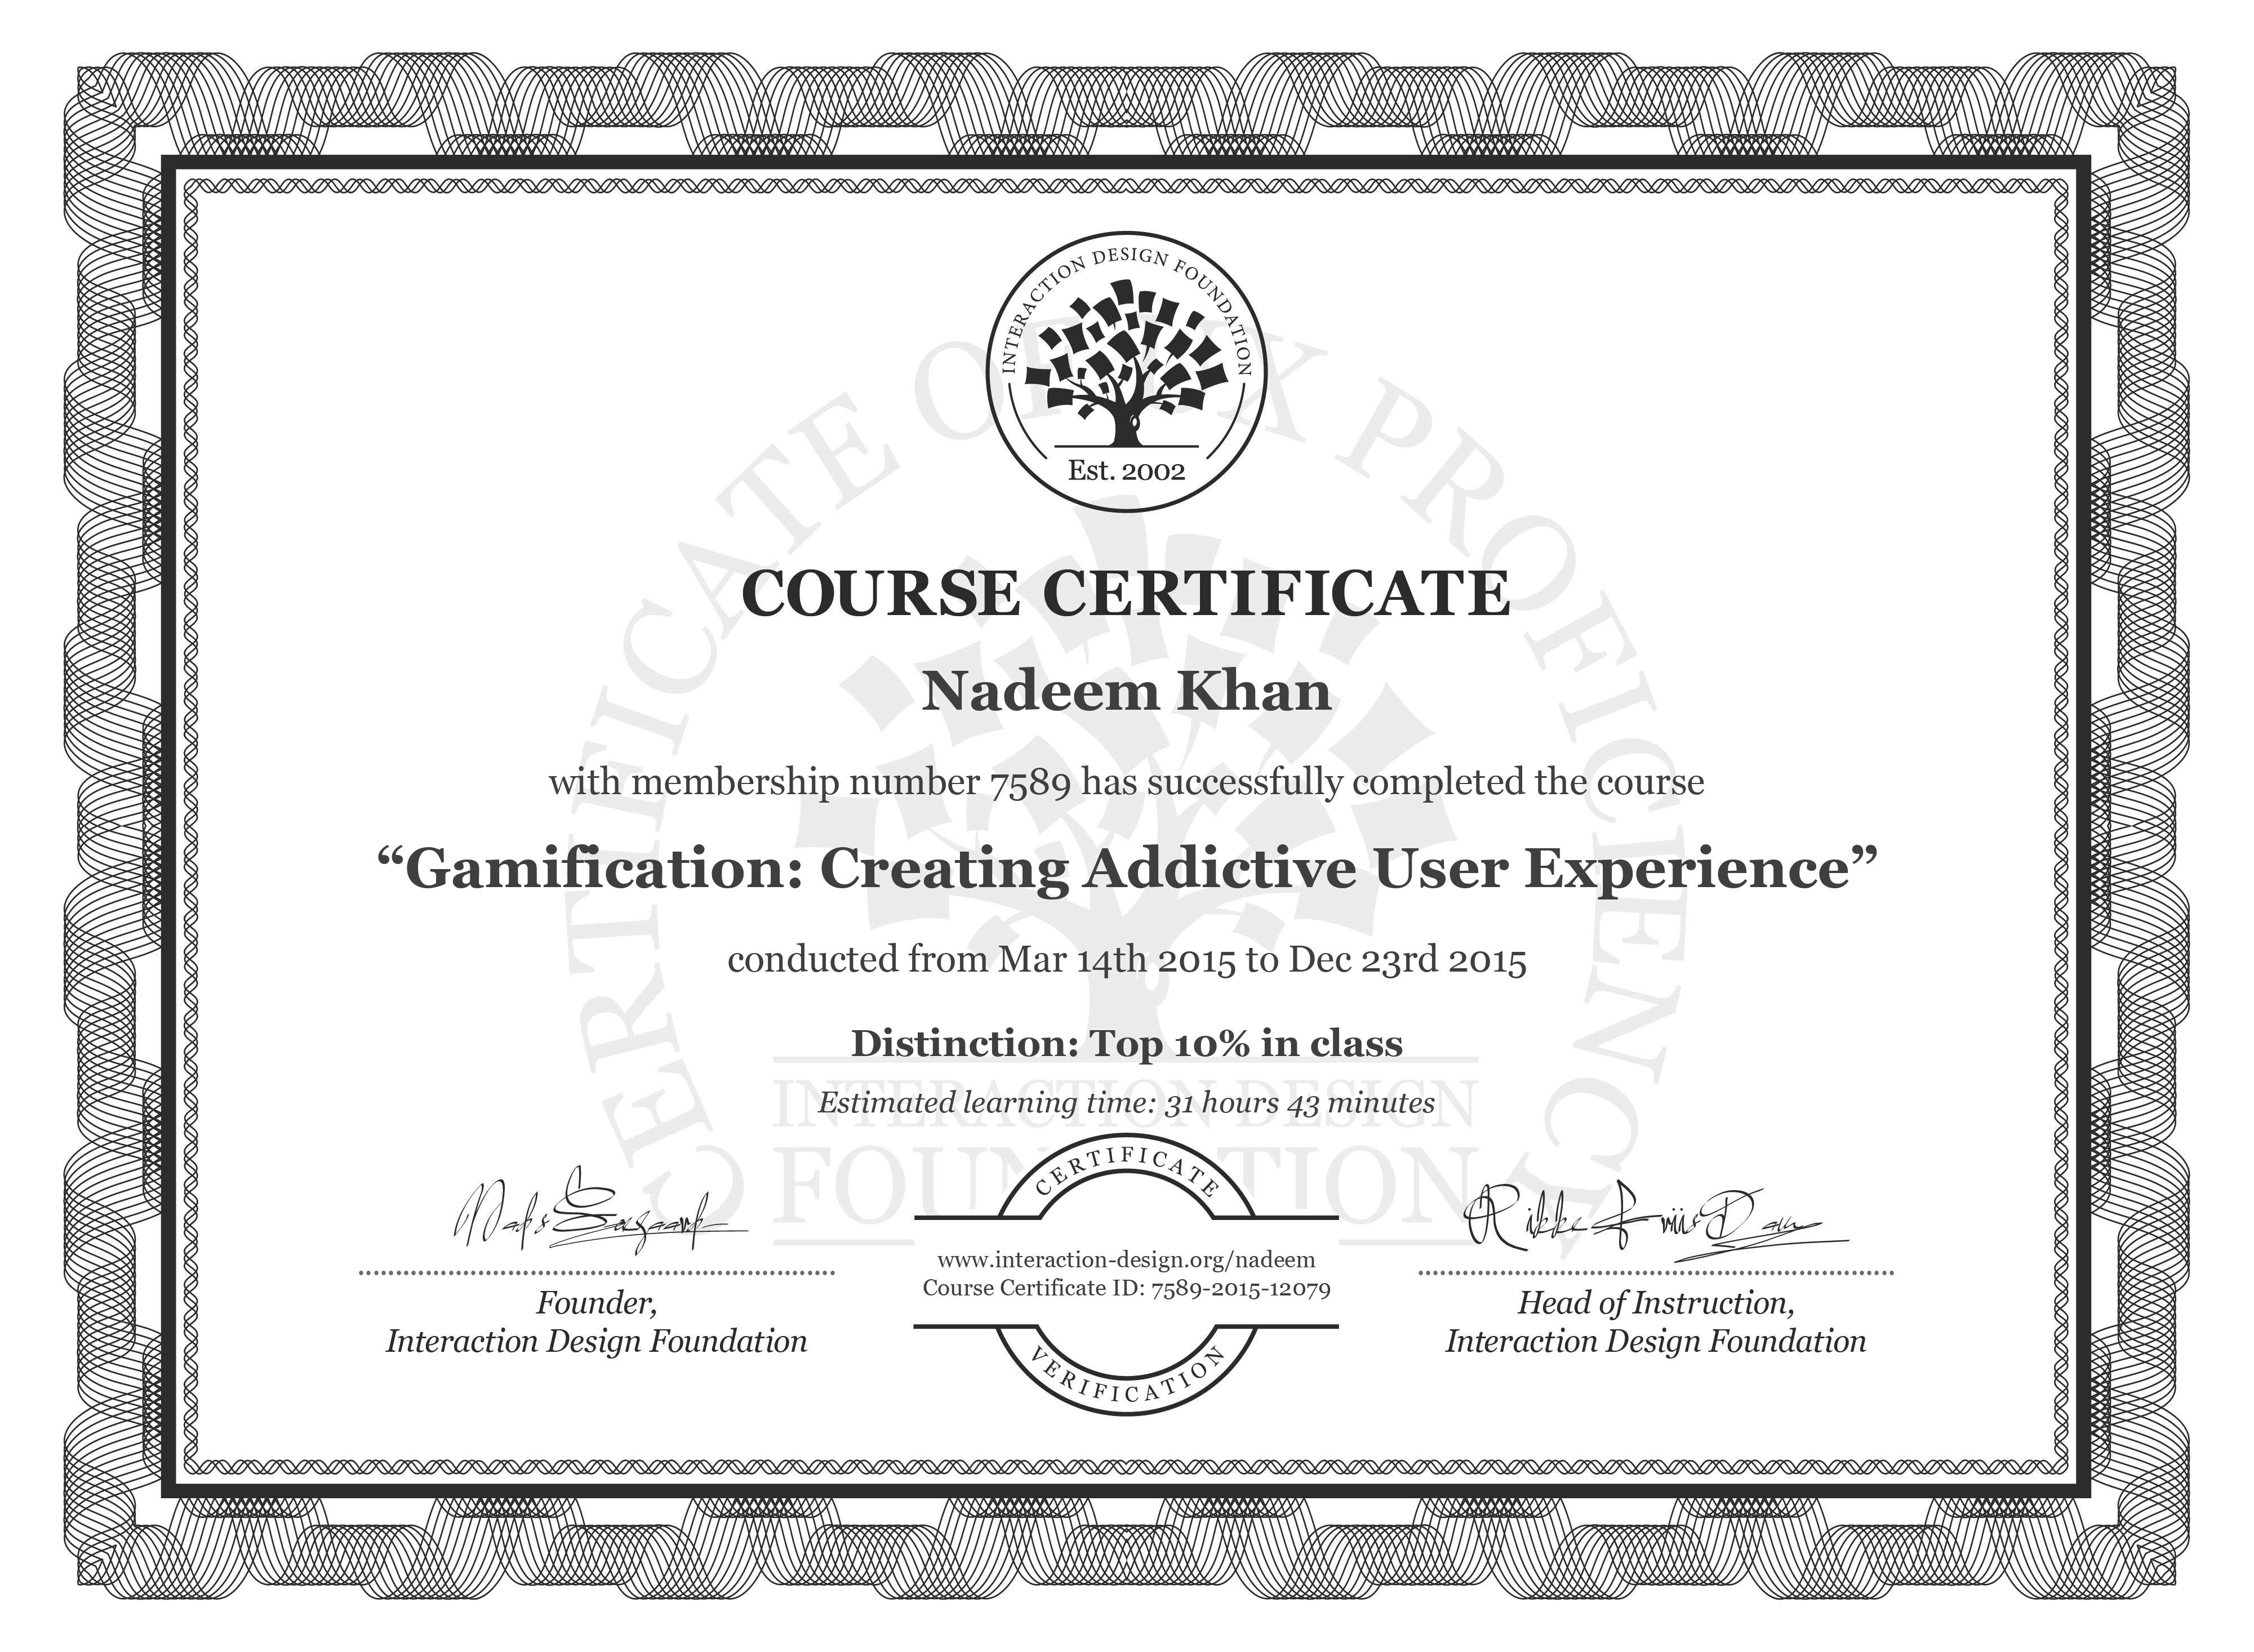 Nadeem Khan's Course Certificate: Gamification: Creating Addictive User Experience